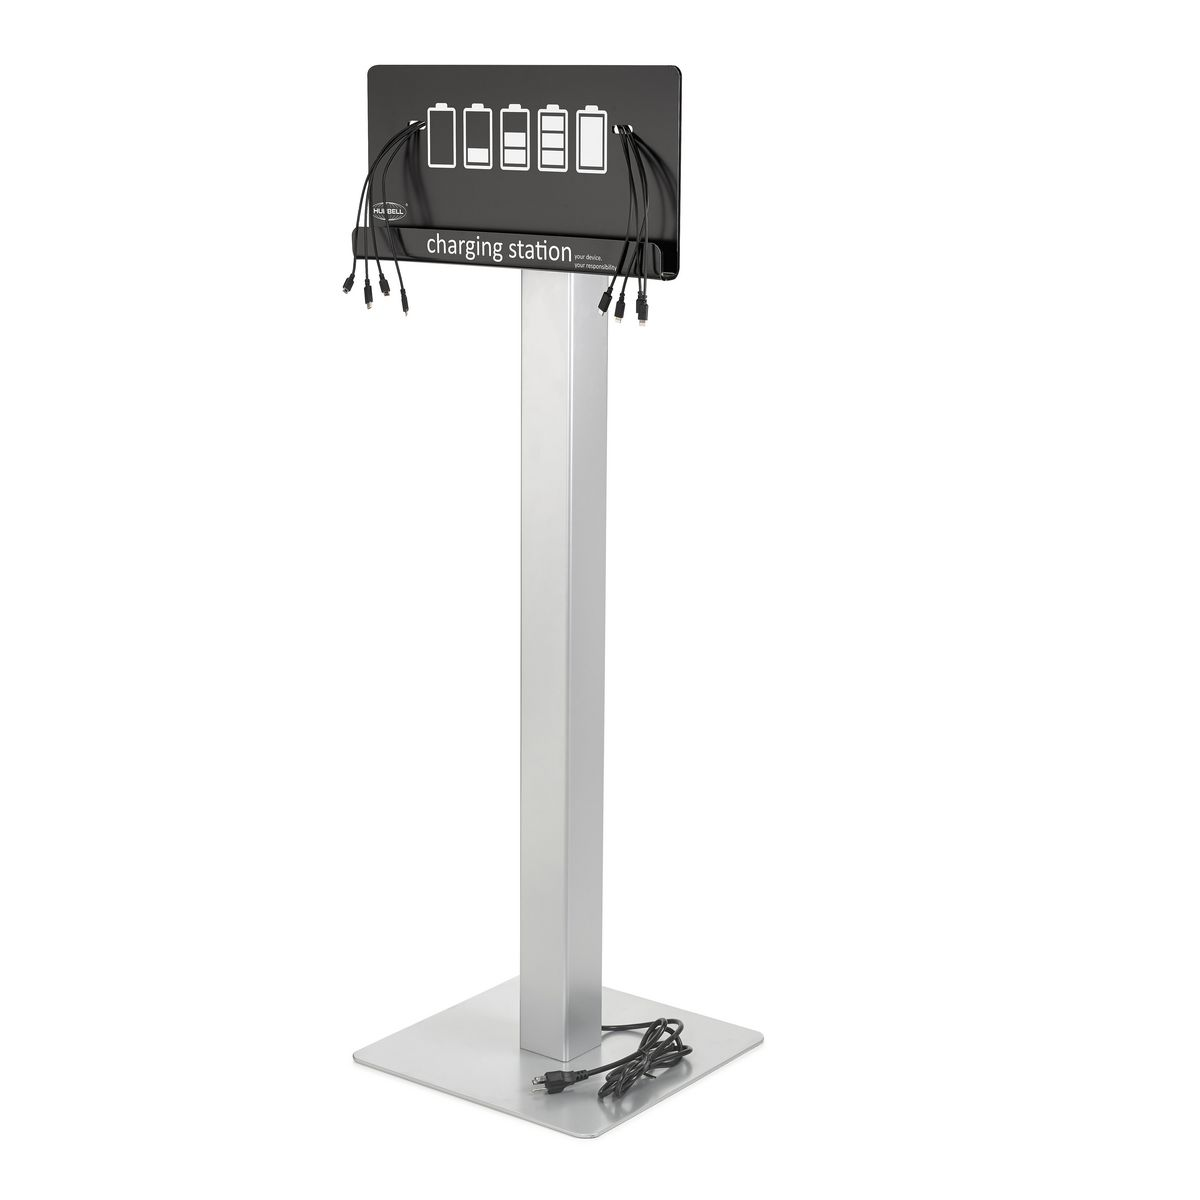 HUBBELL CHARGE STATION, FLOOR STAND